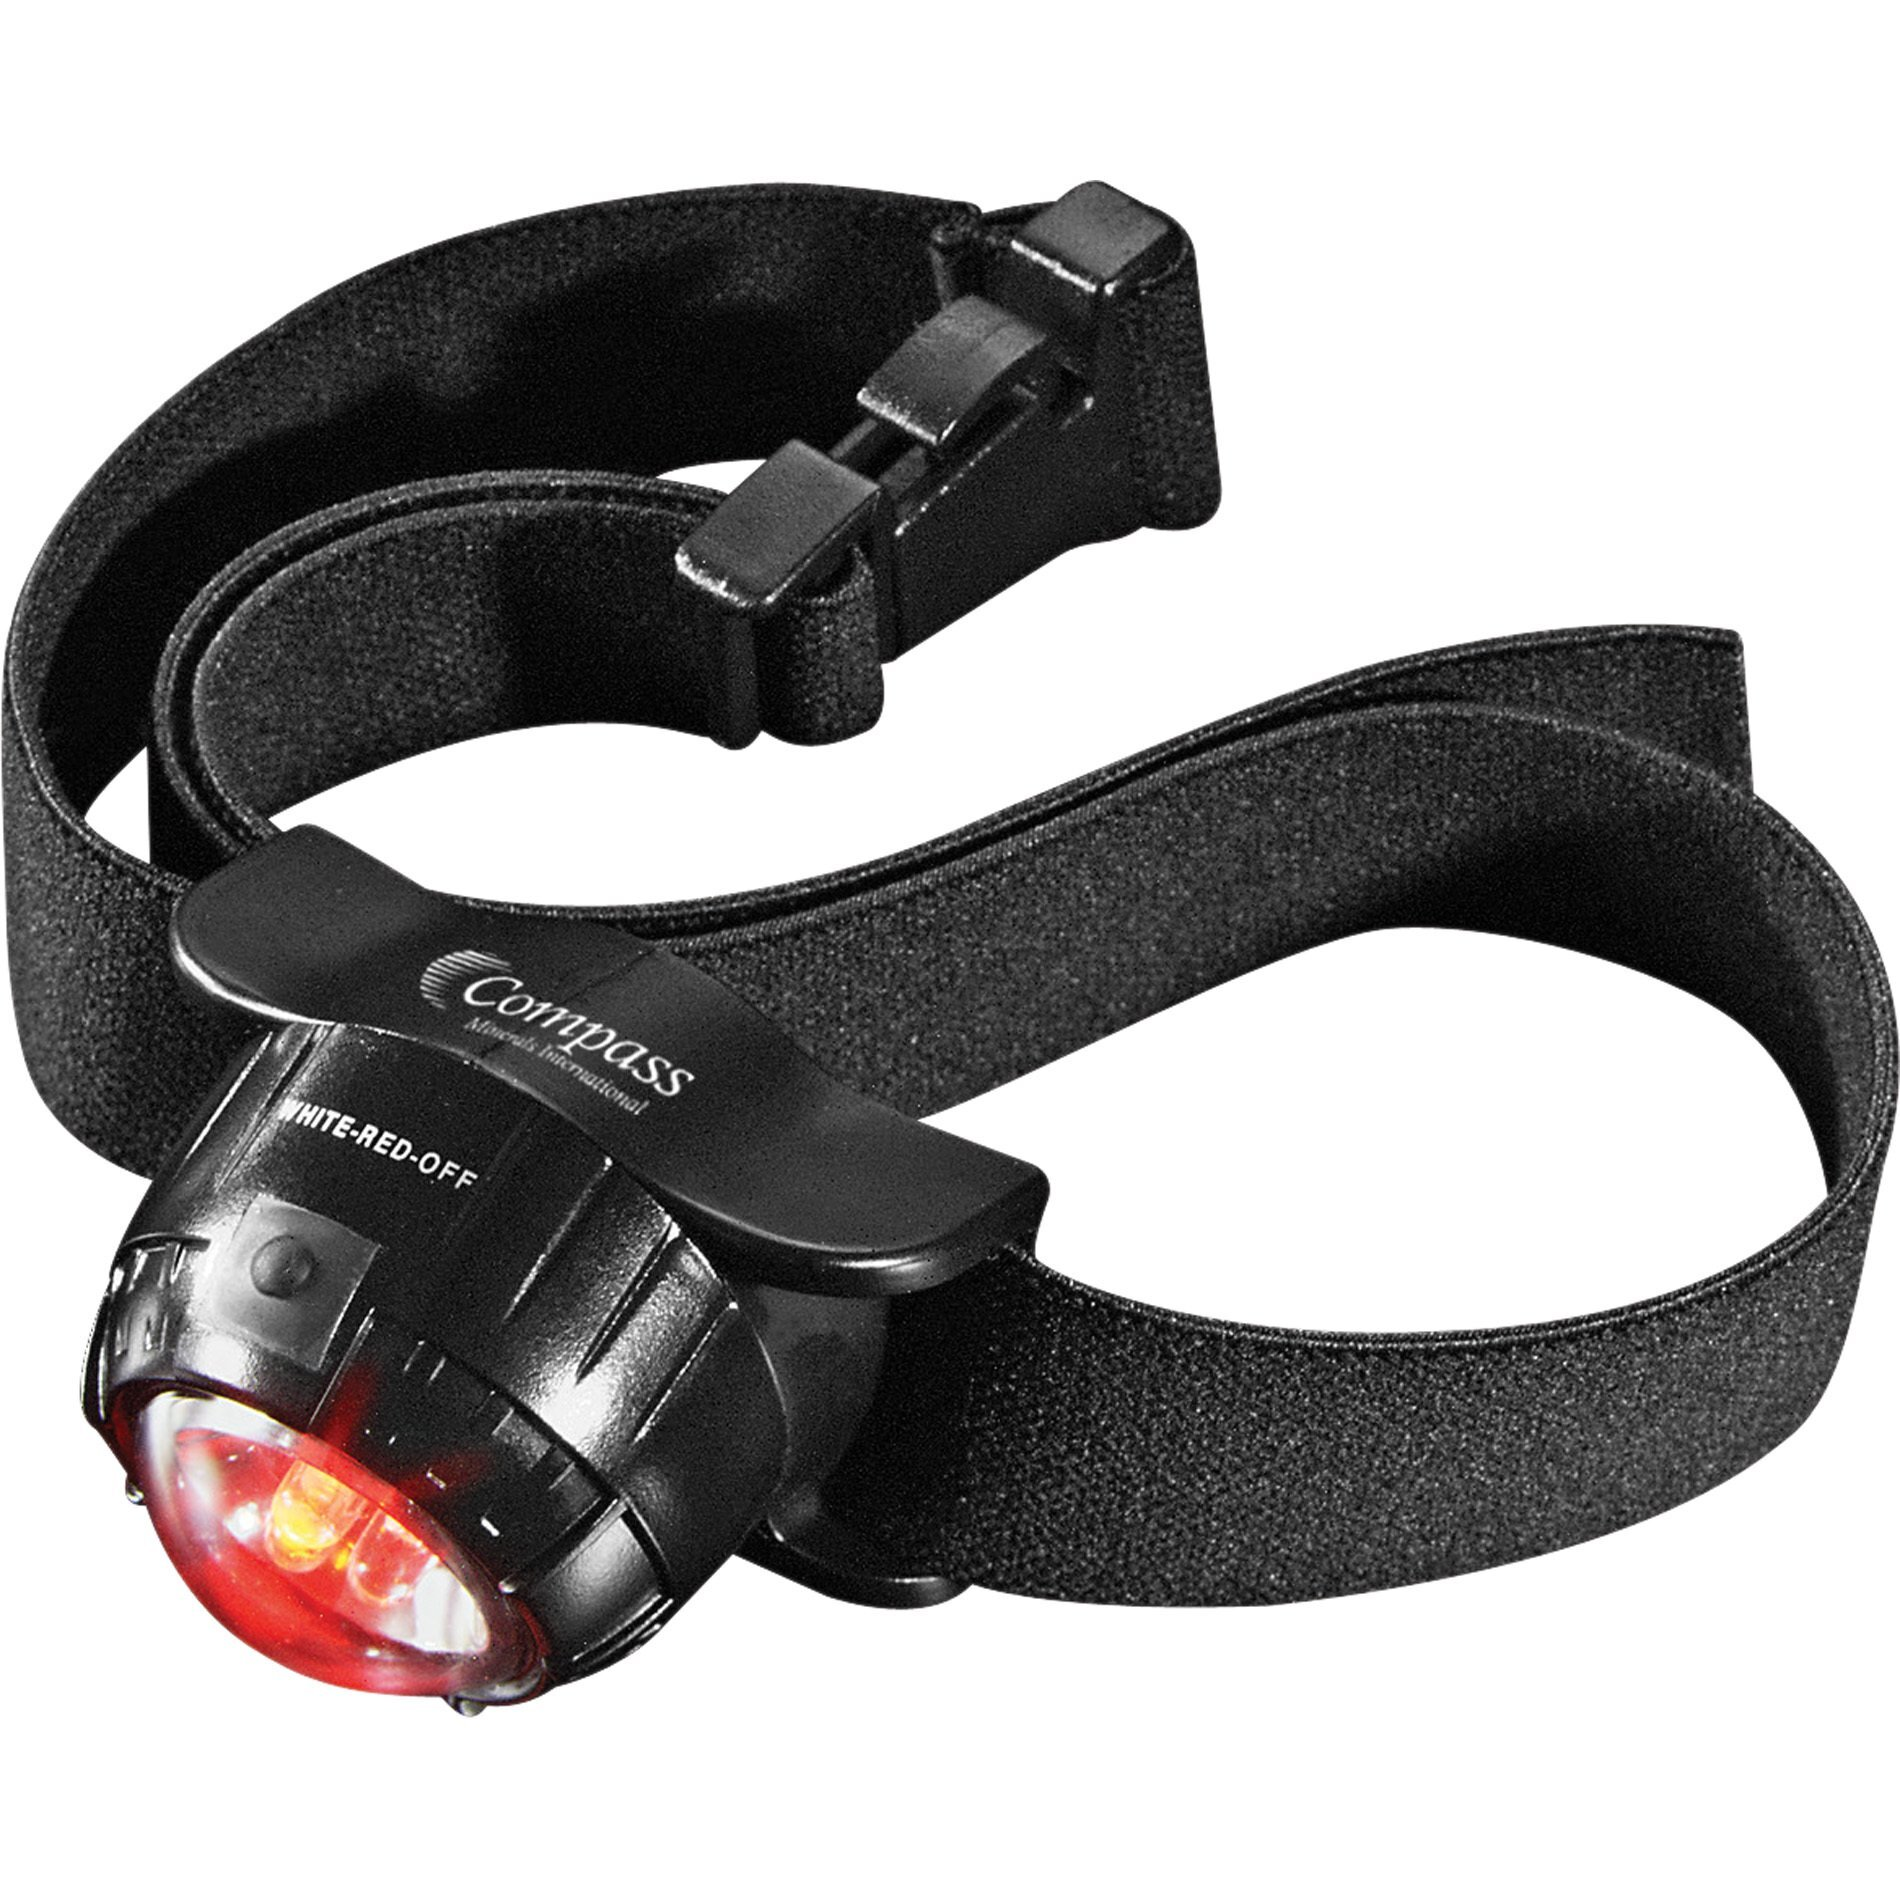 Three LED Headlamp with 2 Lithium Batteries